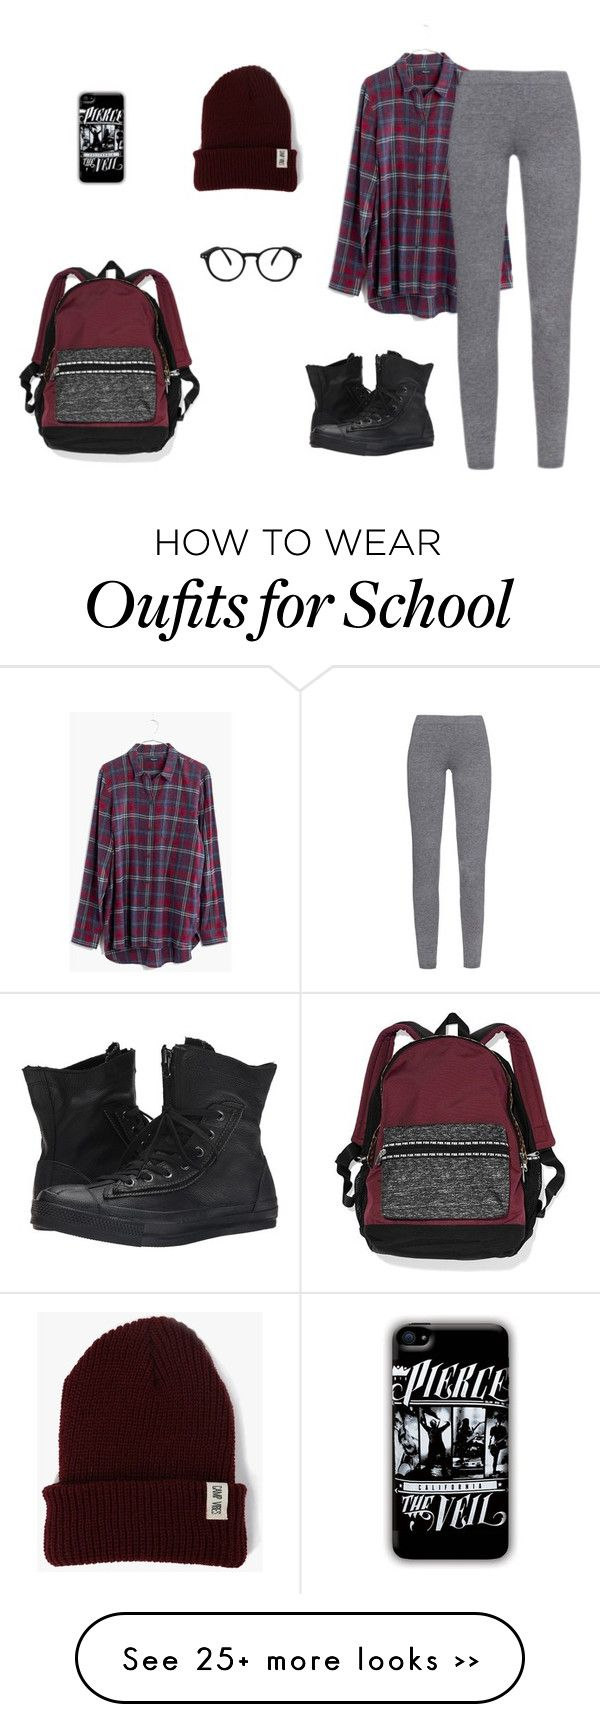 """""""School Look Book"""" by that-fangirl-u-luv on Polyvore featuring Madewell, MaxMara, Converse, See Concept and Victoria's Secret"""